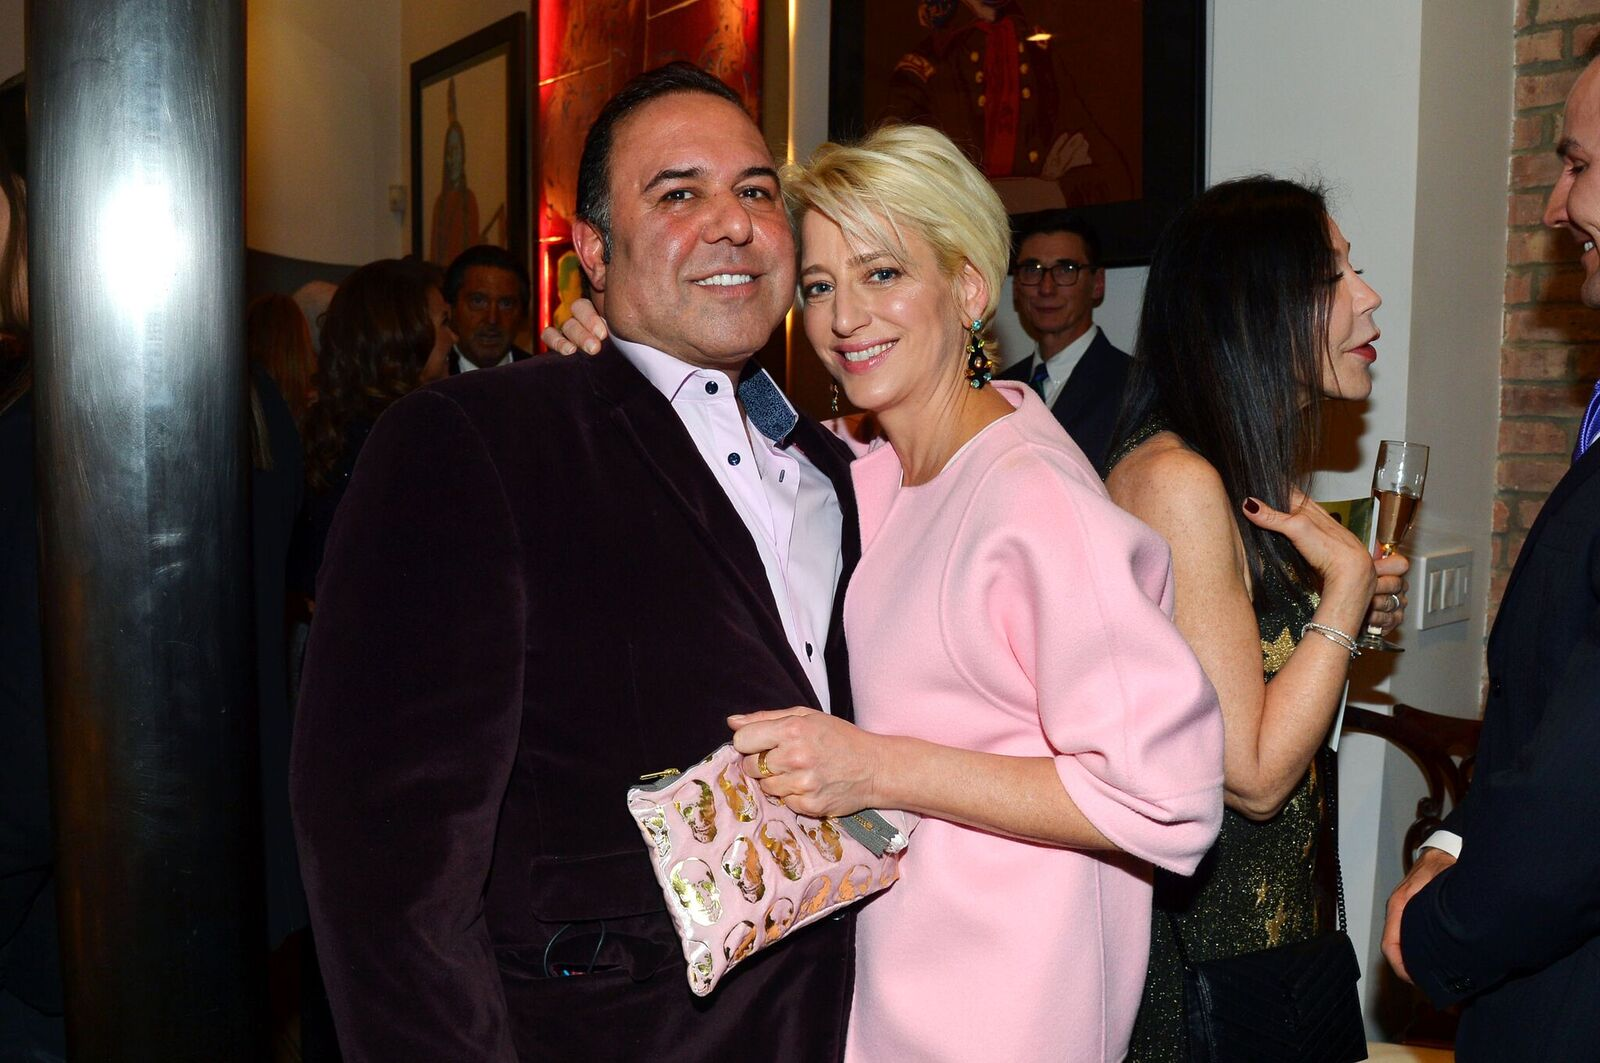 John Mahdessian and Dorinda Medley attend Leesa Rowland, Ramona Singer, R. Couri Hay & Cornelia Guest Salute Animal Ashram at Chez Couri on December 19, 2016 | Photo: Getty Images